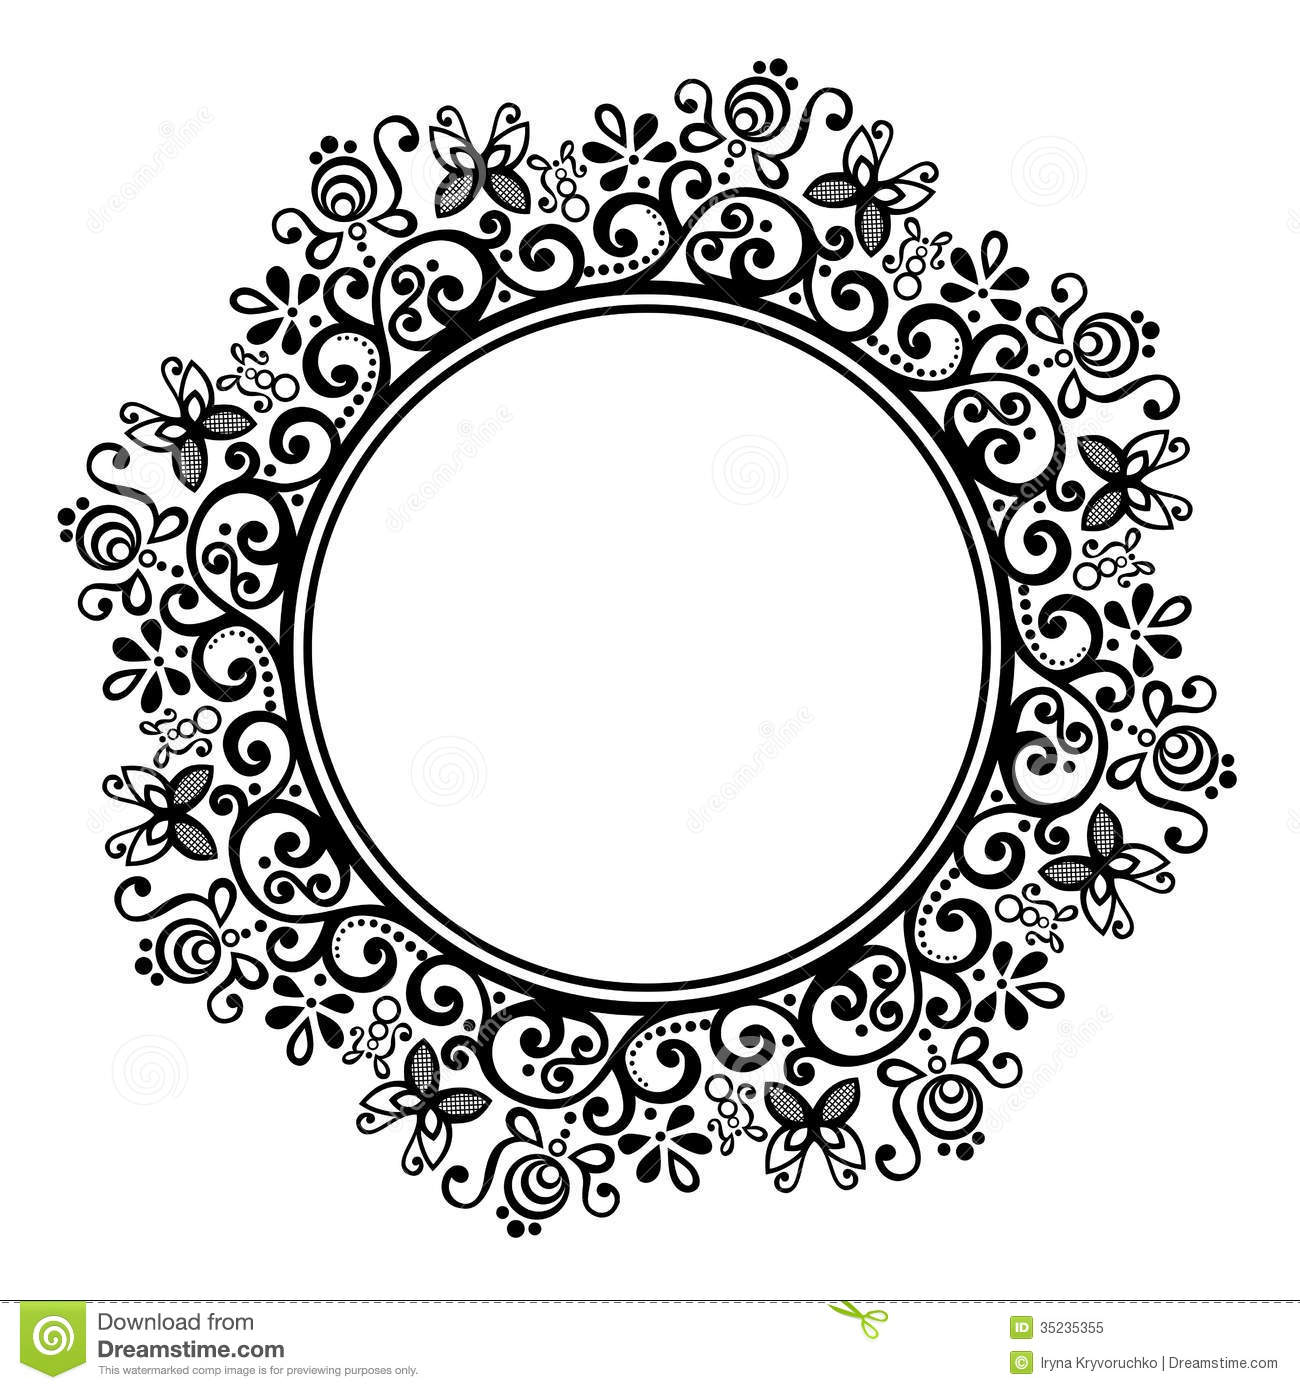 Decorative Round Frame Royalty Free Stock Photo - Image: 35235355